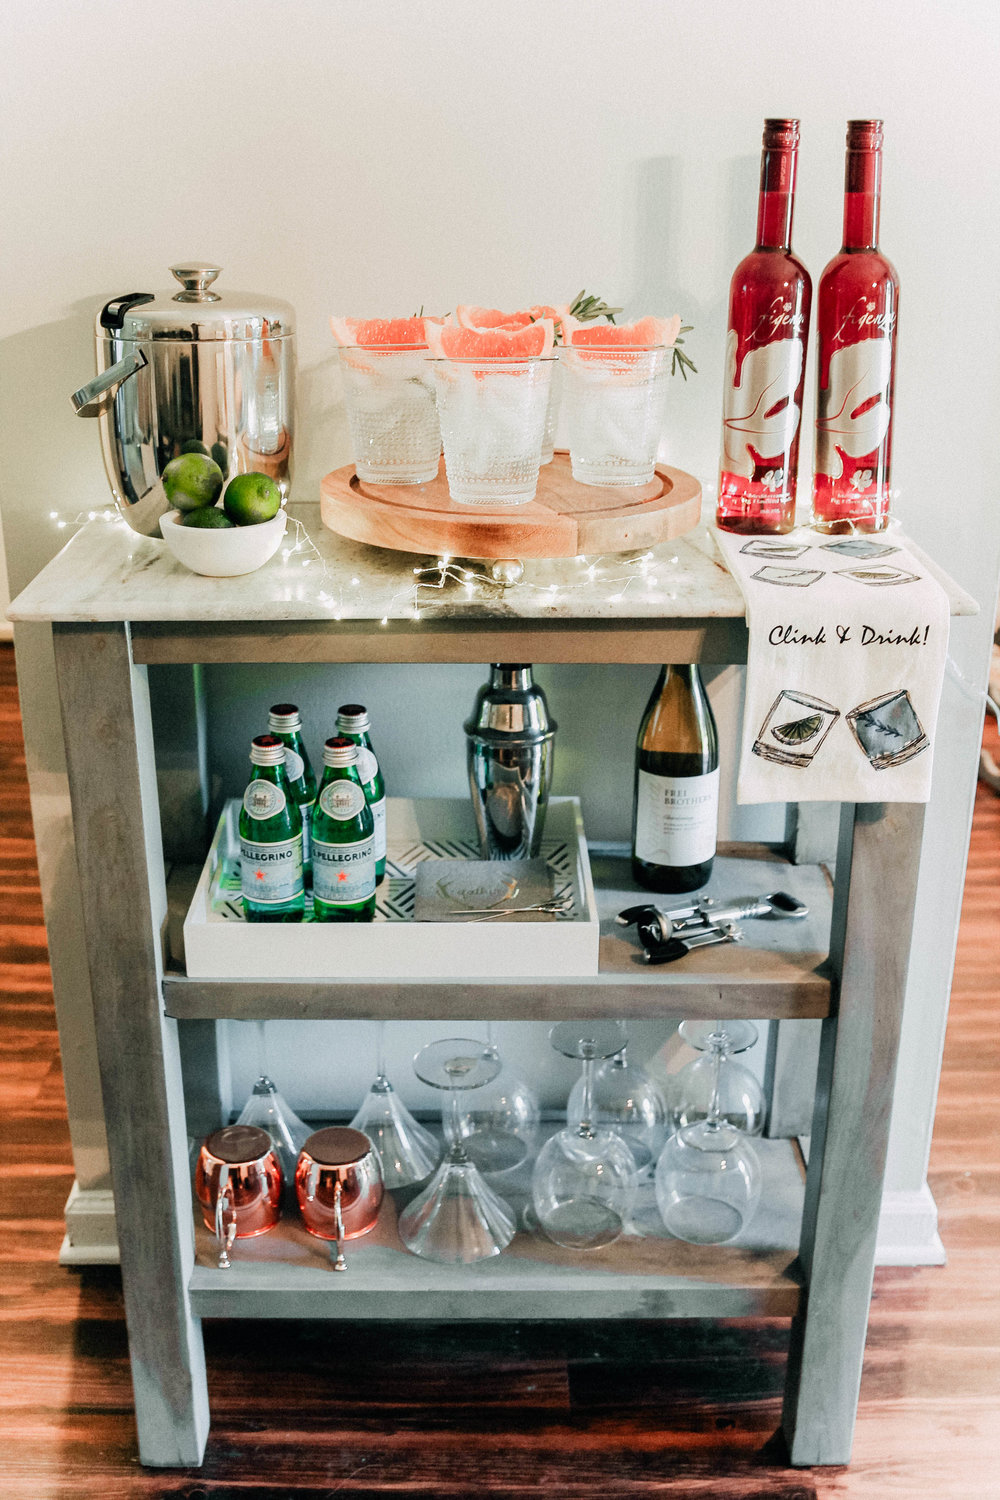 HOW TO STYLE A BAR CART - + GRAPEFRUIT COCKTAIL RECIPE